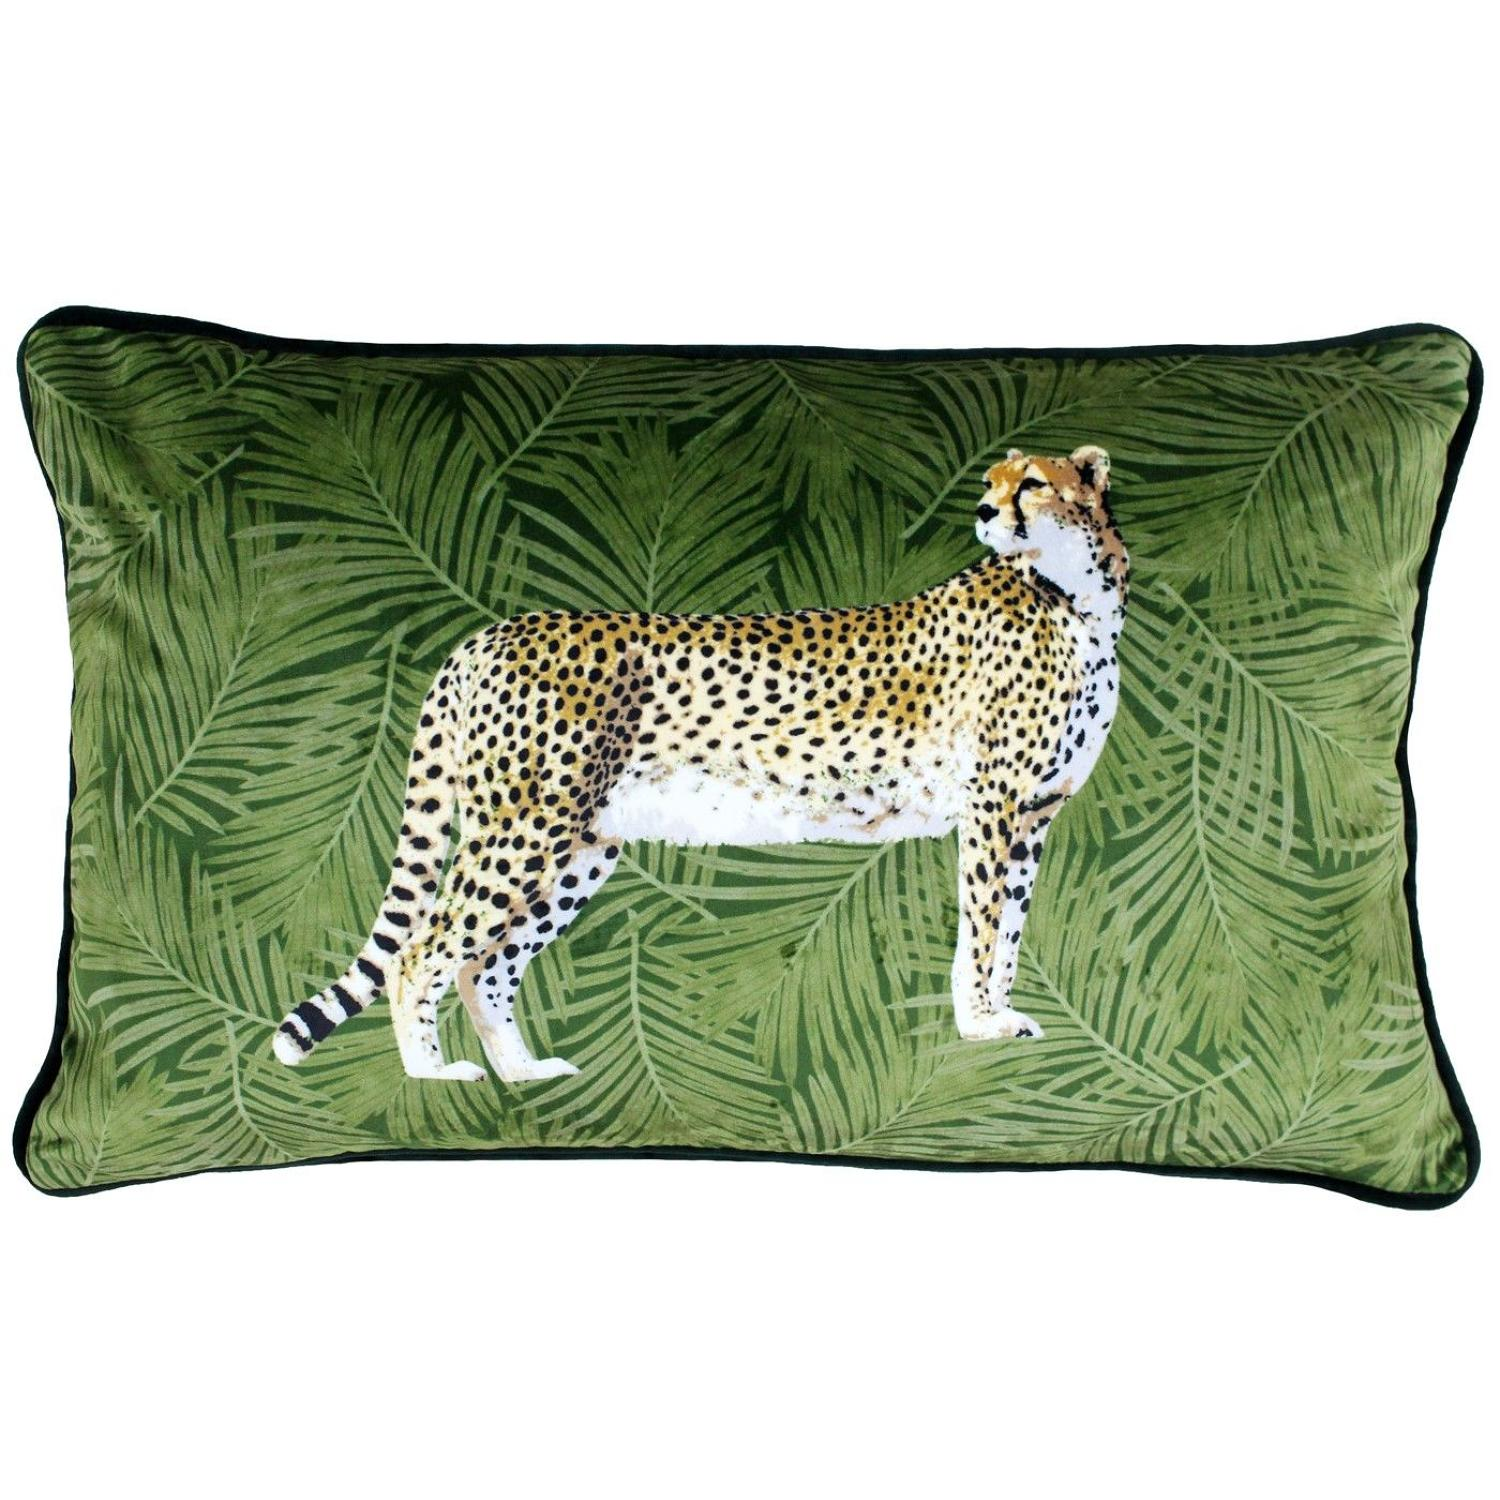 Velvet soft cheetah cushion - feather inner